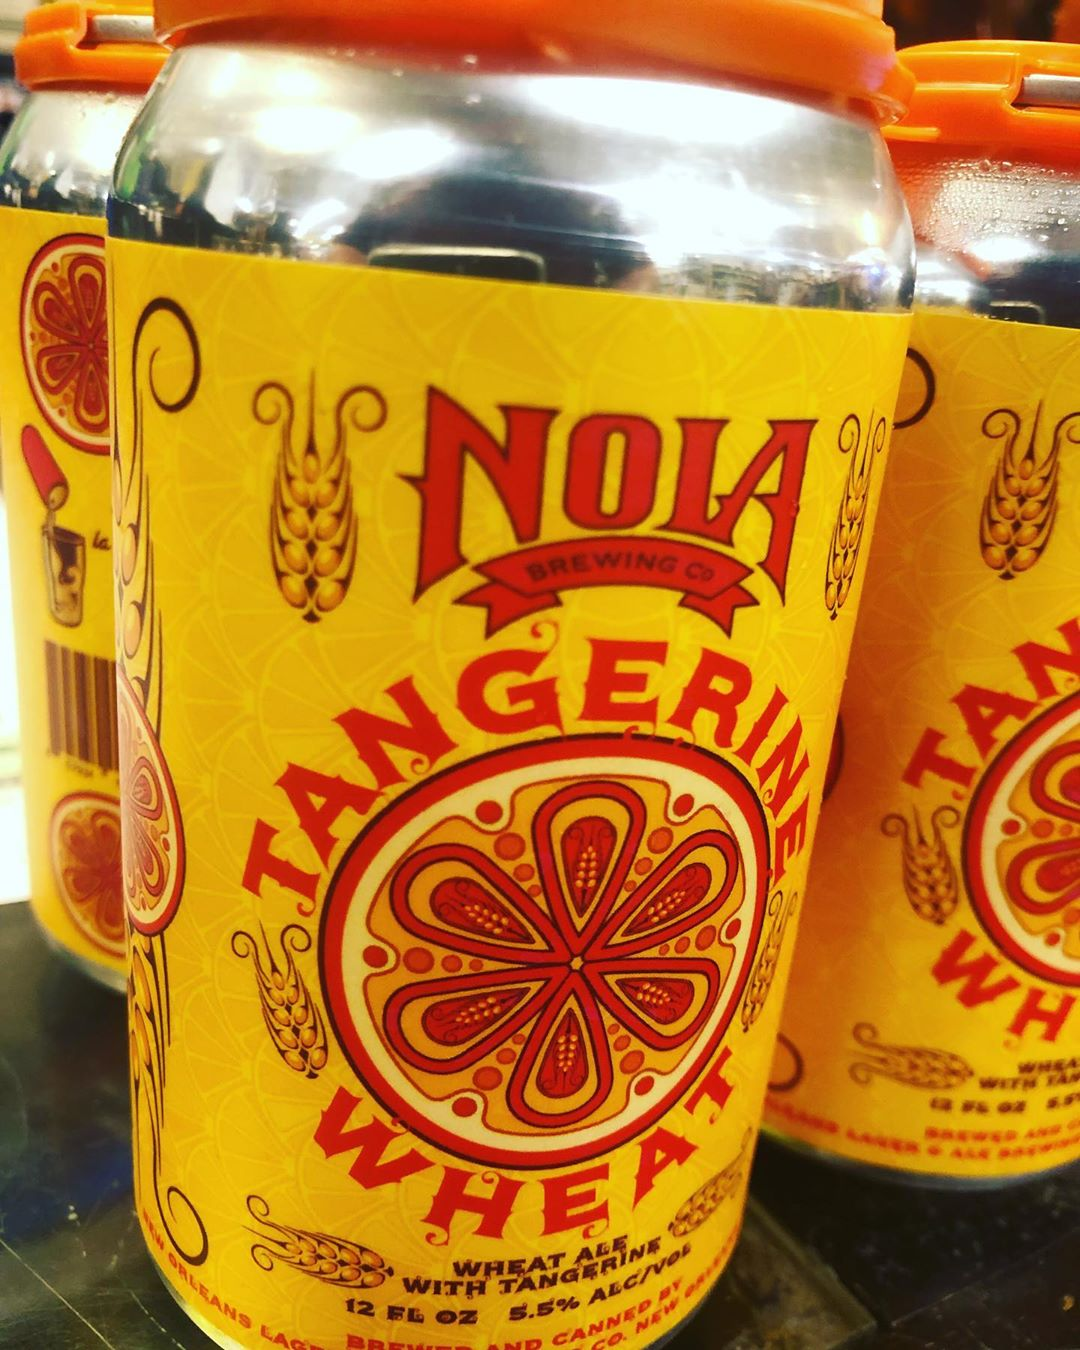 @nolabrewing Tangerine Wheat is now available at our Perkins Rd location! #beer #drinklocal #tangerine #summercrush